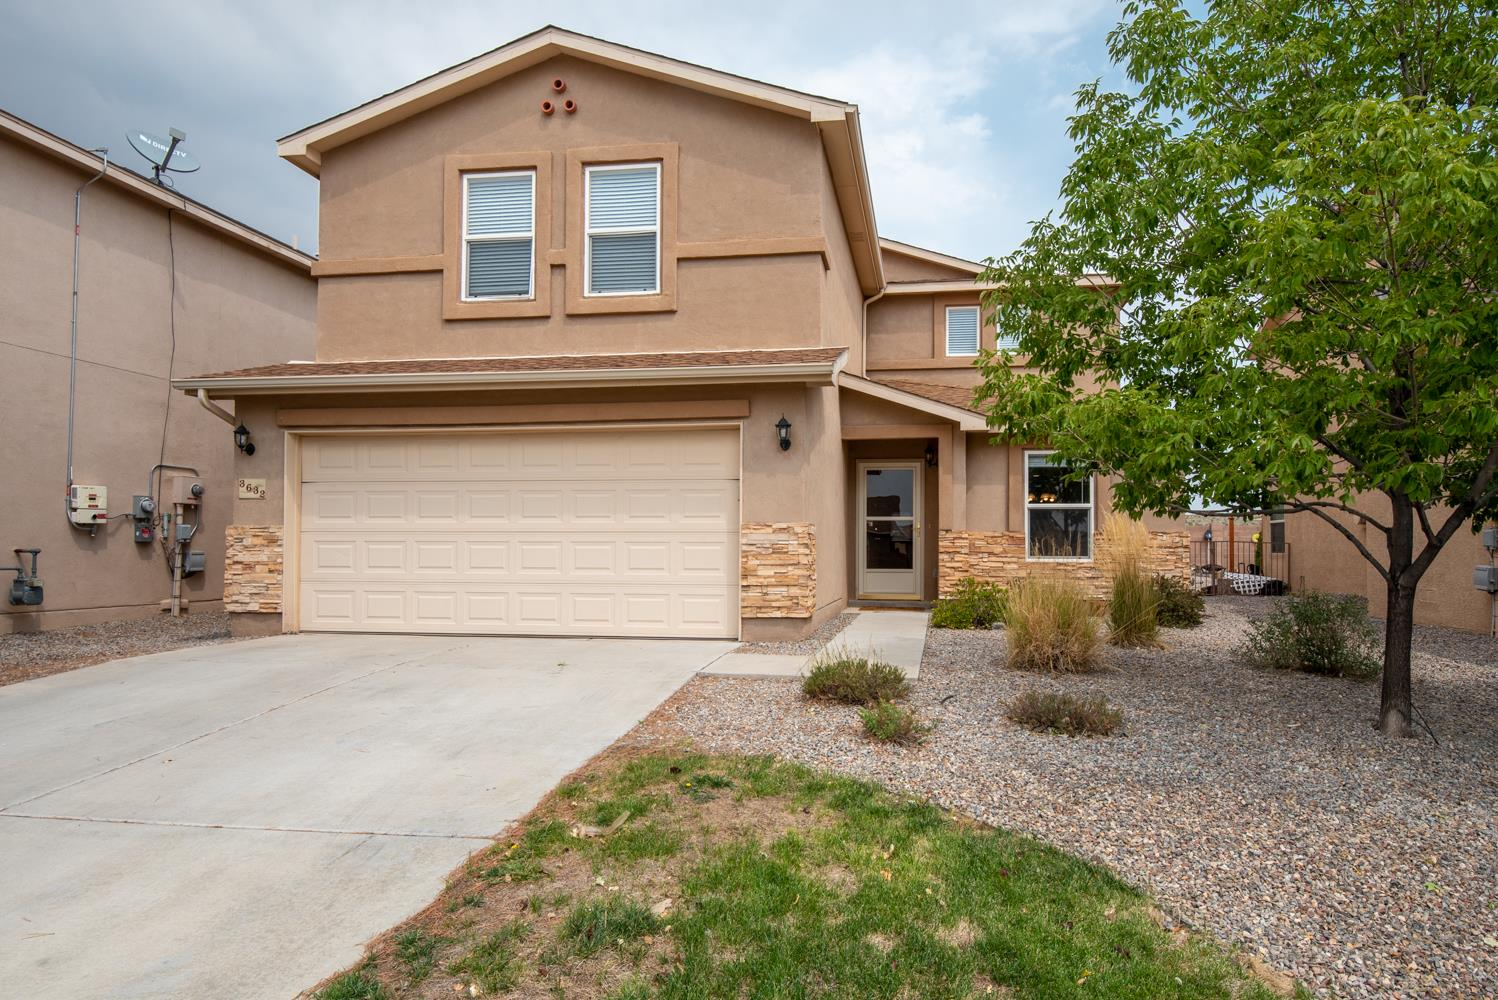 Finally here it is... a Rio Rancho home that checks ALL the boxes! 2,922 square feet of new carpeted and painted home.  The Master Bedroom is Downstairs, 3 Car Garage, Pre Home Inspection Done, New Water Heater, Washer and Dryer stay, original owner, move in ready immaculate home.  '' Being so close to the elementary school, park and dog park was great. When I needed an additional bedroom temporarily we easily converted part of the garage in a day!'' - Seller  The 3rd bay in the garage would make a good office, schoolroom, man cave, whatever! Soaring ceiling, 2 large living areas, one on each floor. Request a private Covid safe showing today.